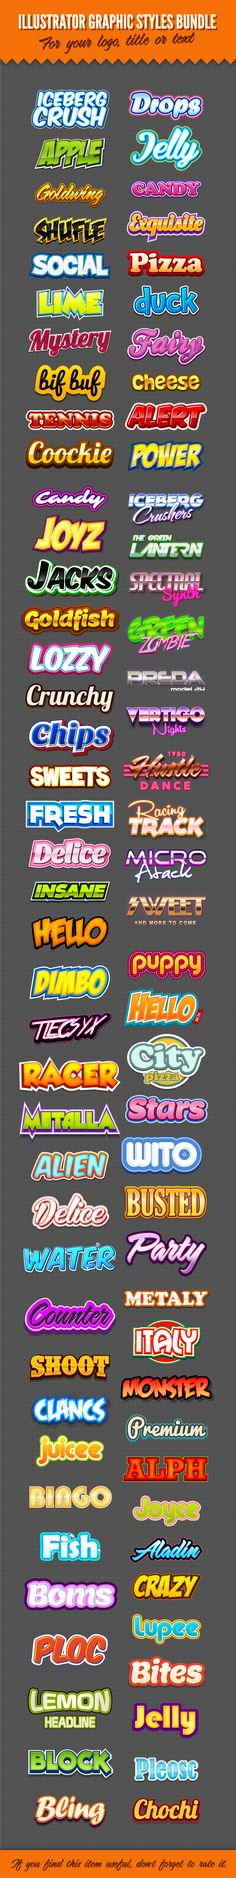 Illustrator Logo Graphic Styles Bundle 1 | GraphicRiver